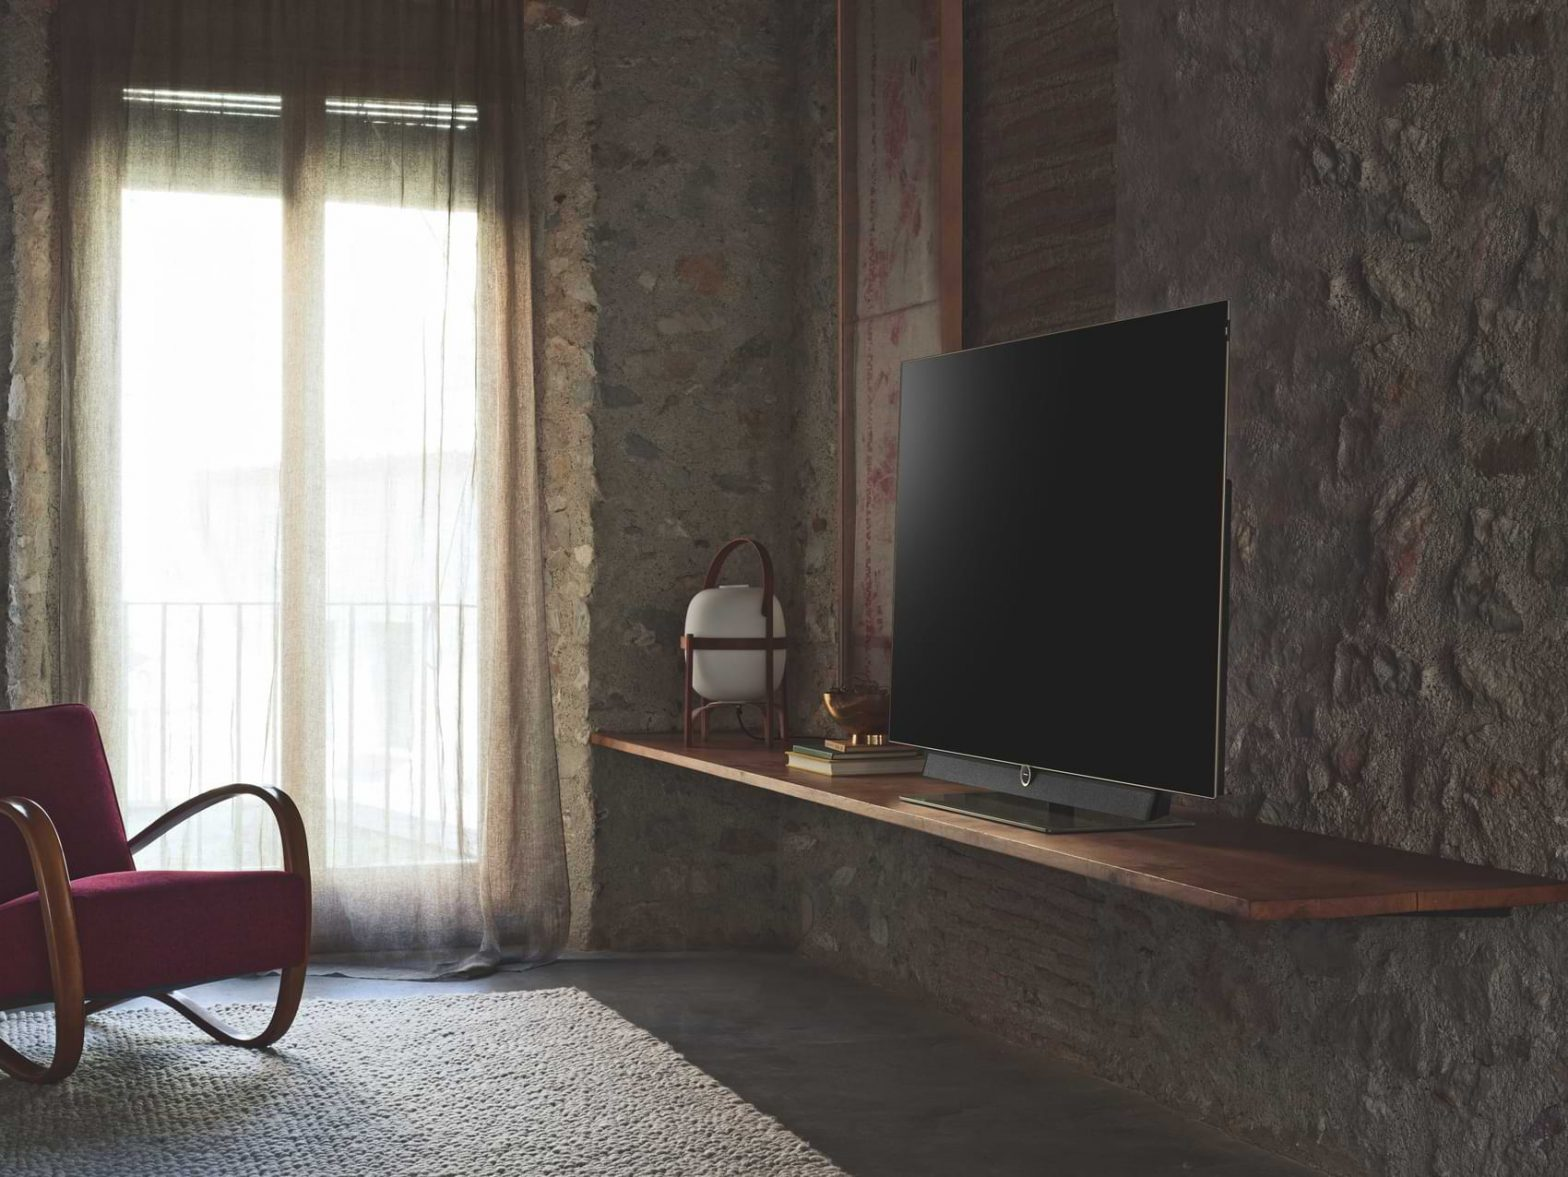 A 4K TV sits on a stand in an empty room as the light reflects off of it